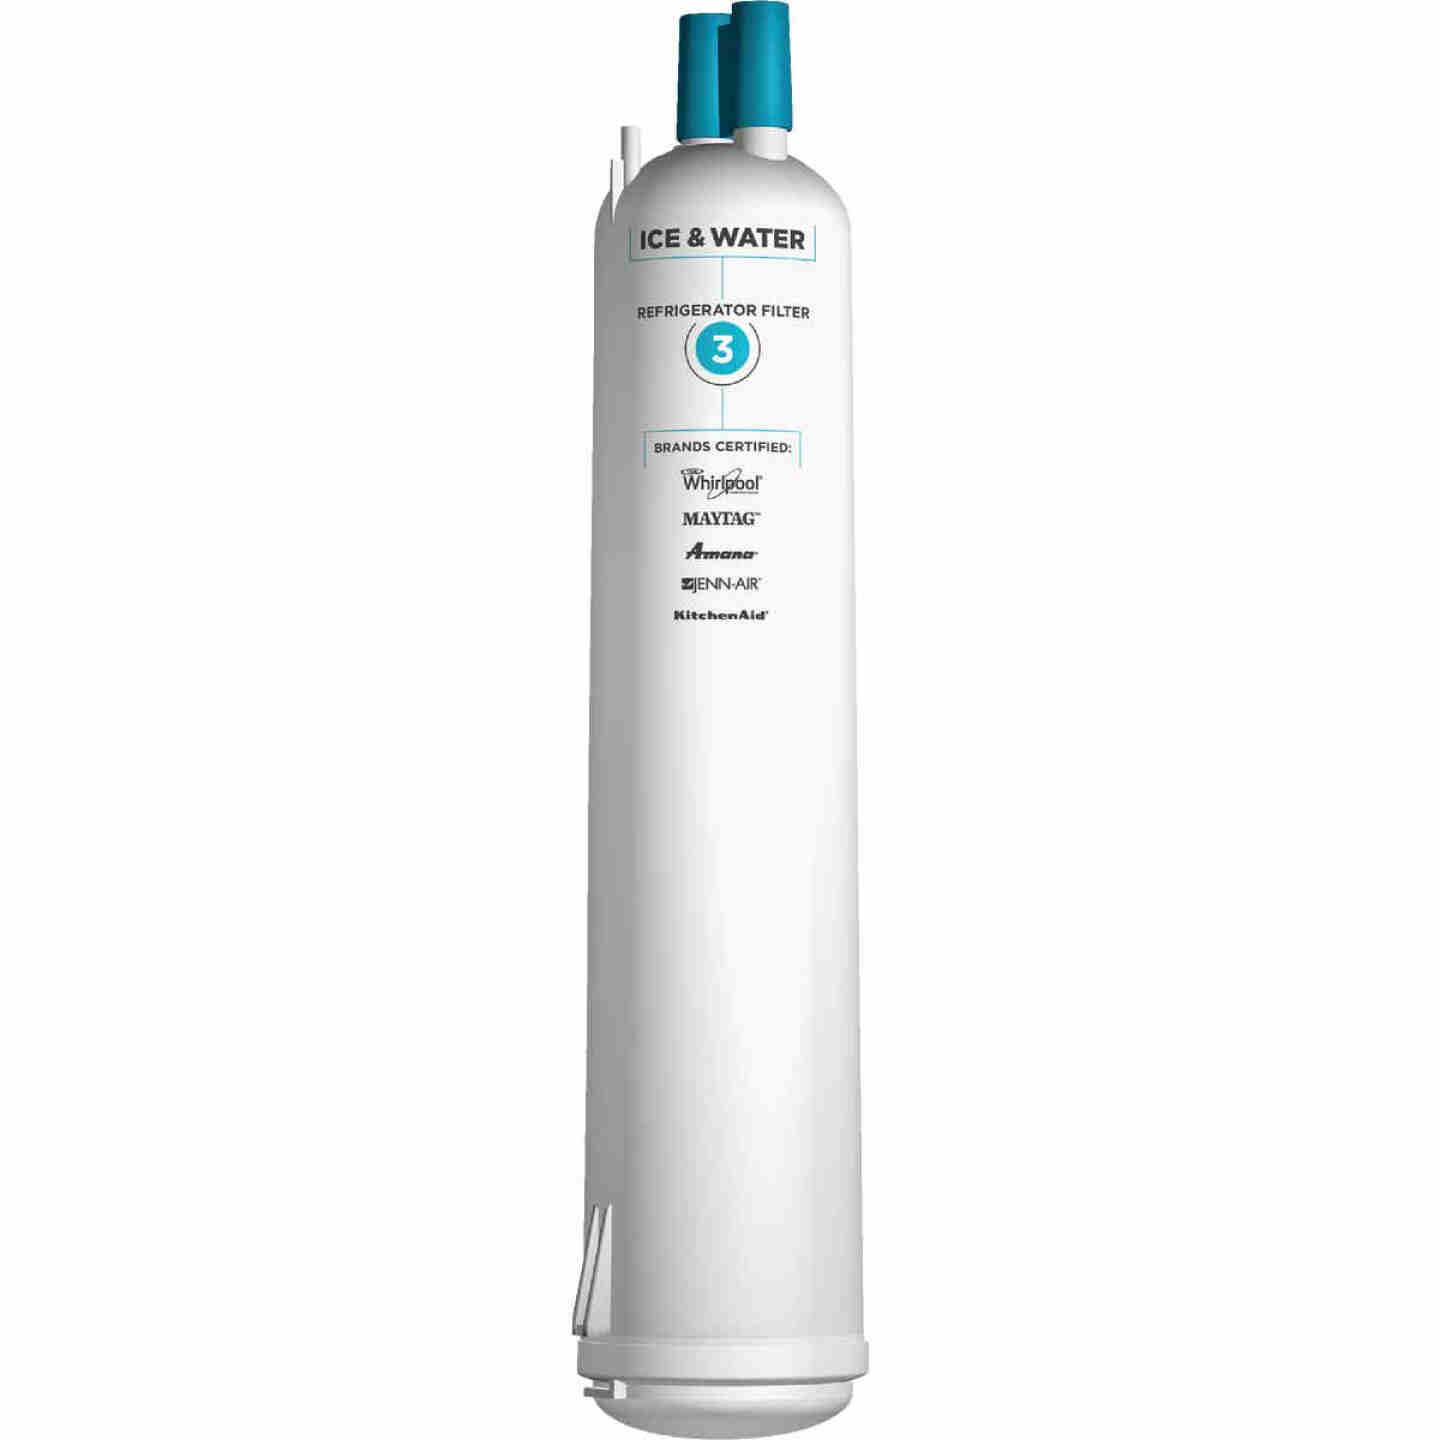 EveryDrop by Whirlpool Filter 3 Icemaker & Refrigerator Water Filter Cartridge Image 1